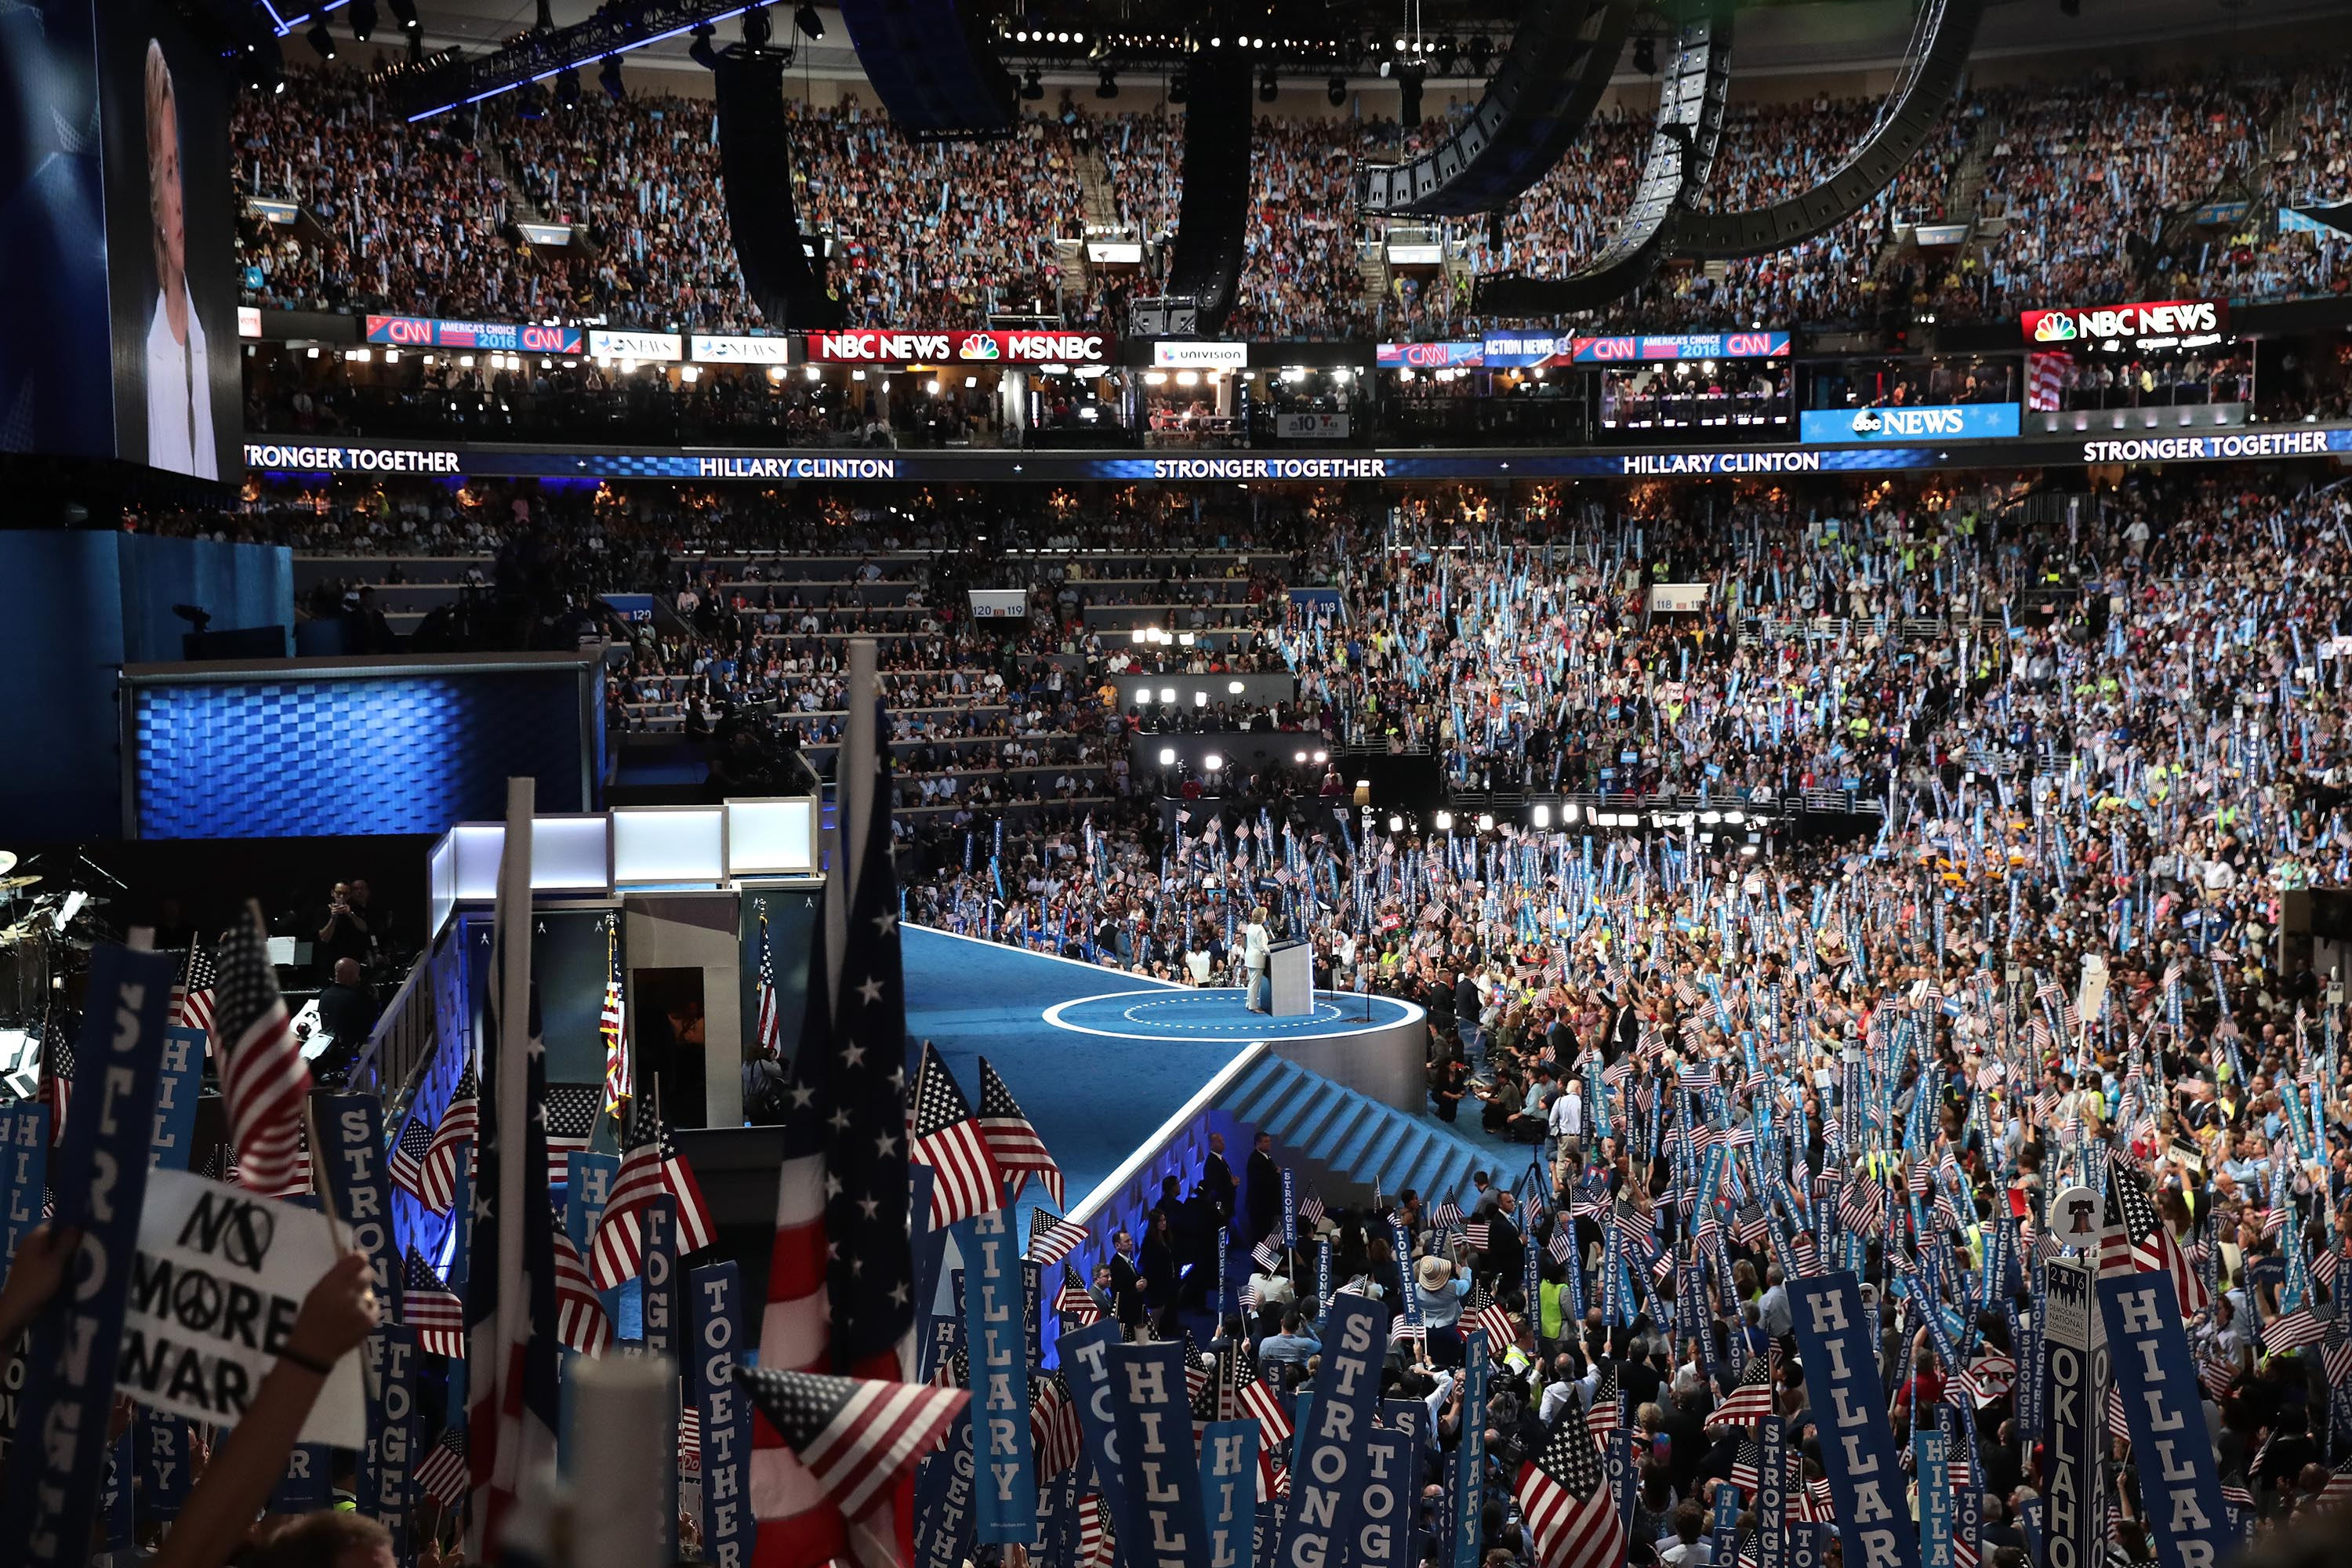 Democrats reveal remote voting rules for convention amid pandemic